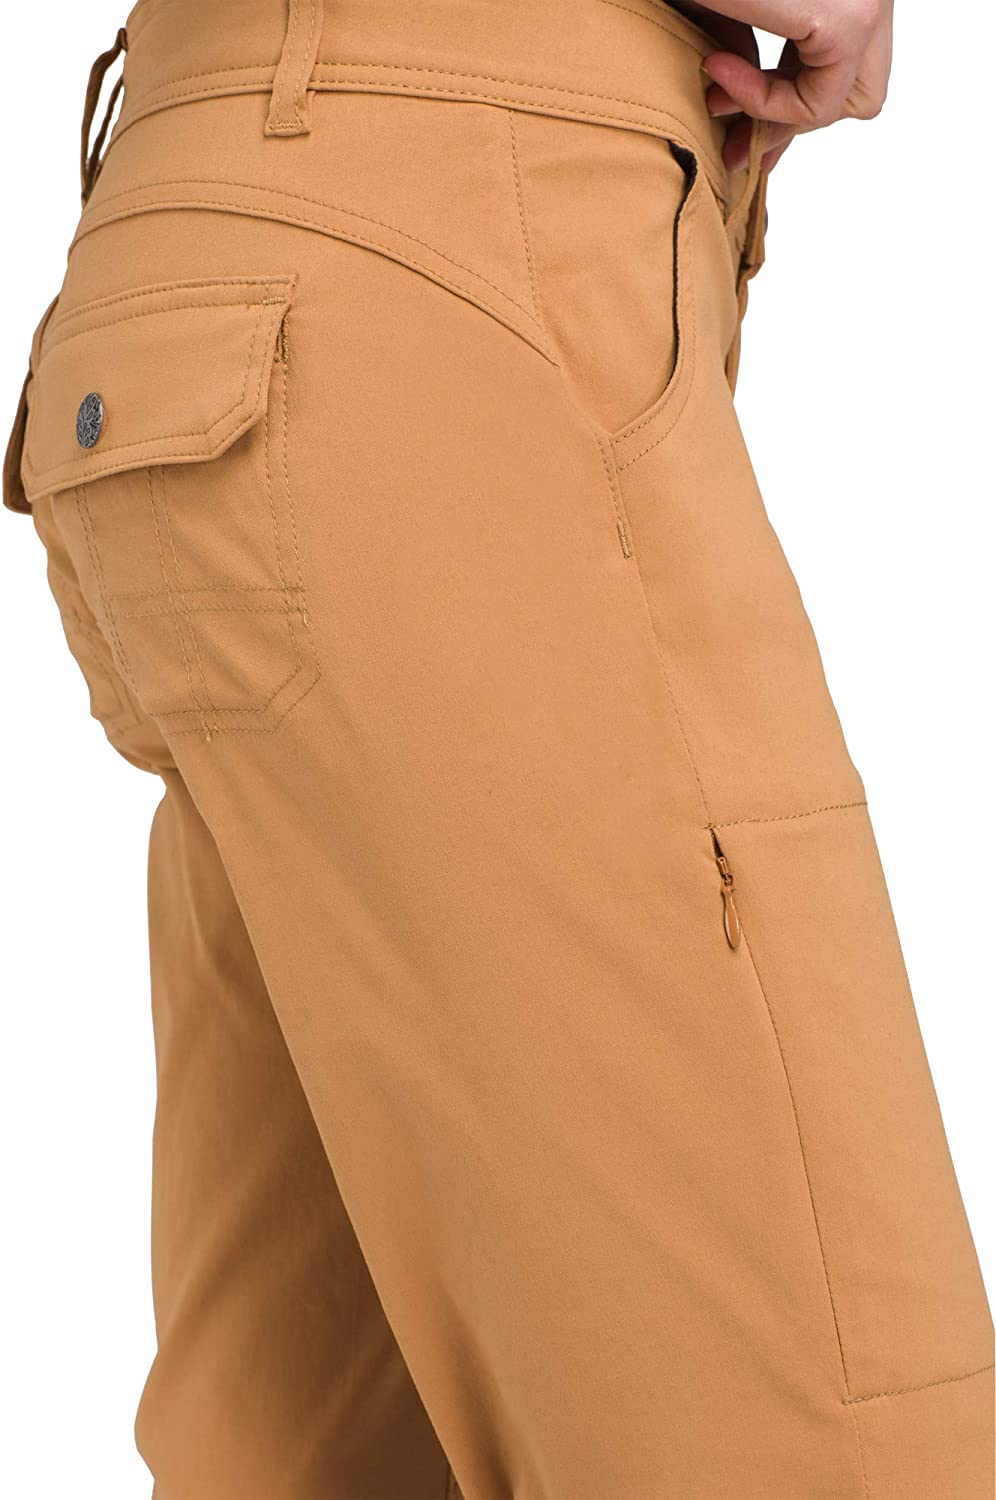 prAna Water-Repellent Stretch Pants for Hiking and Everyday Wear Womens Halle Roll-Up